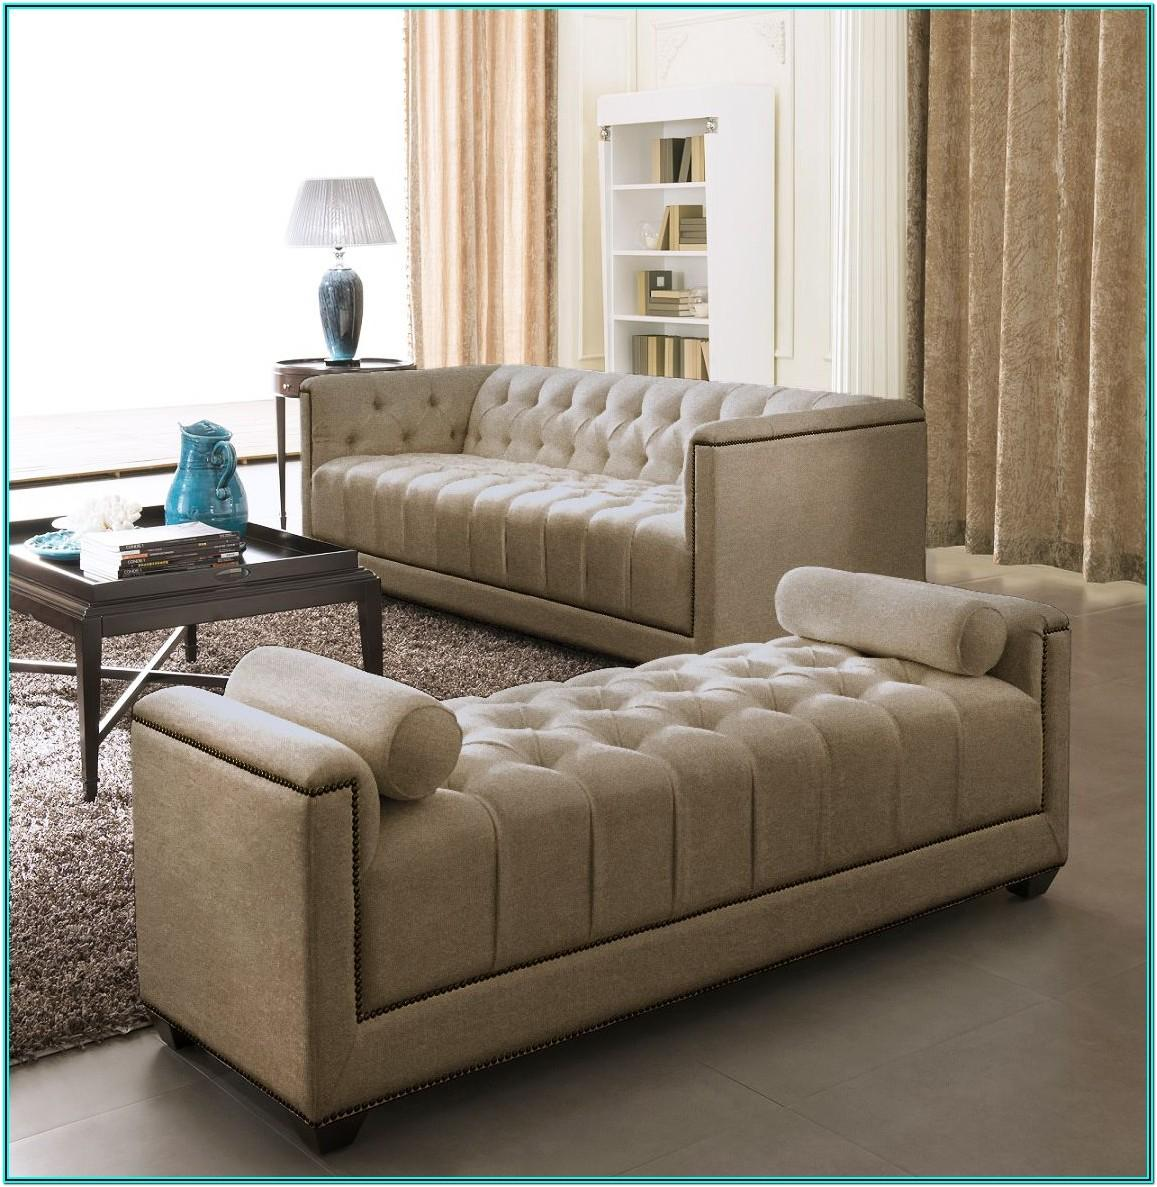 Living Room Sofa And Loveseat Layout Ideas